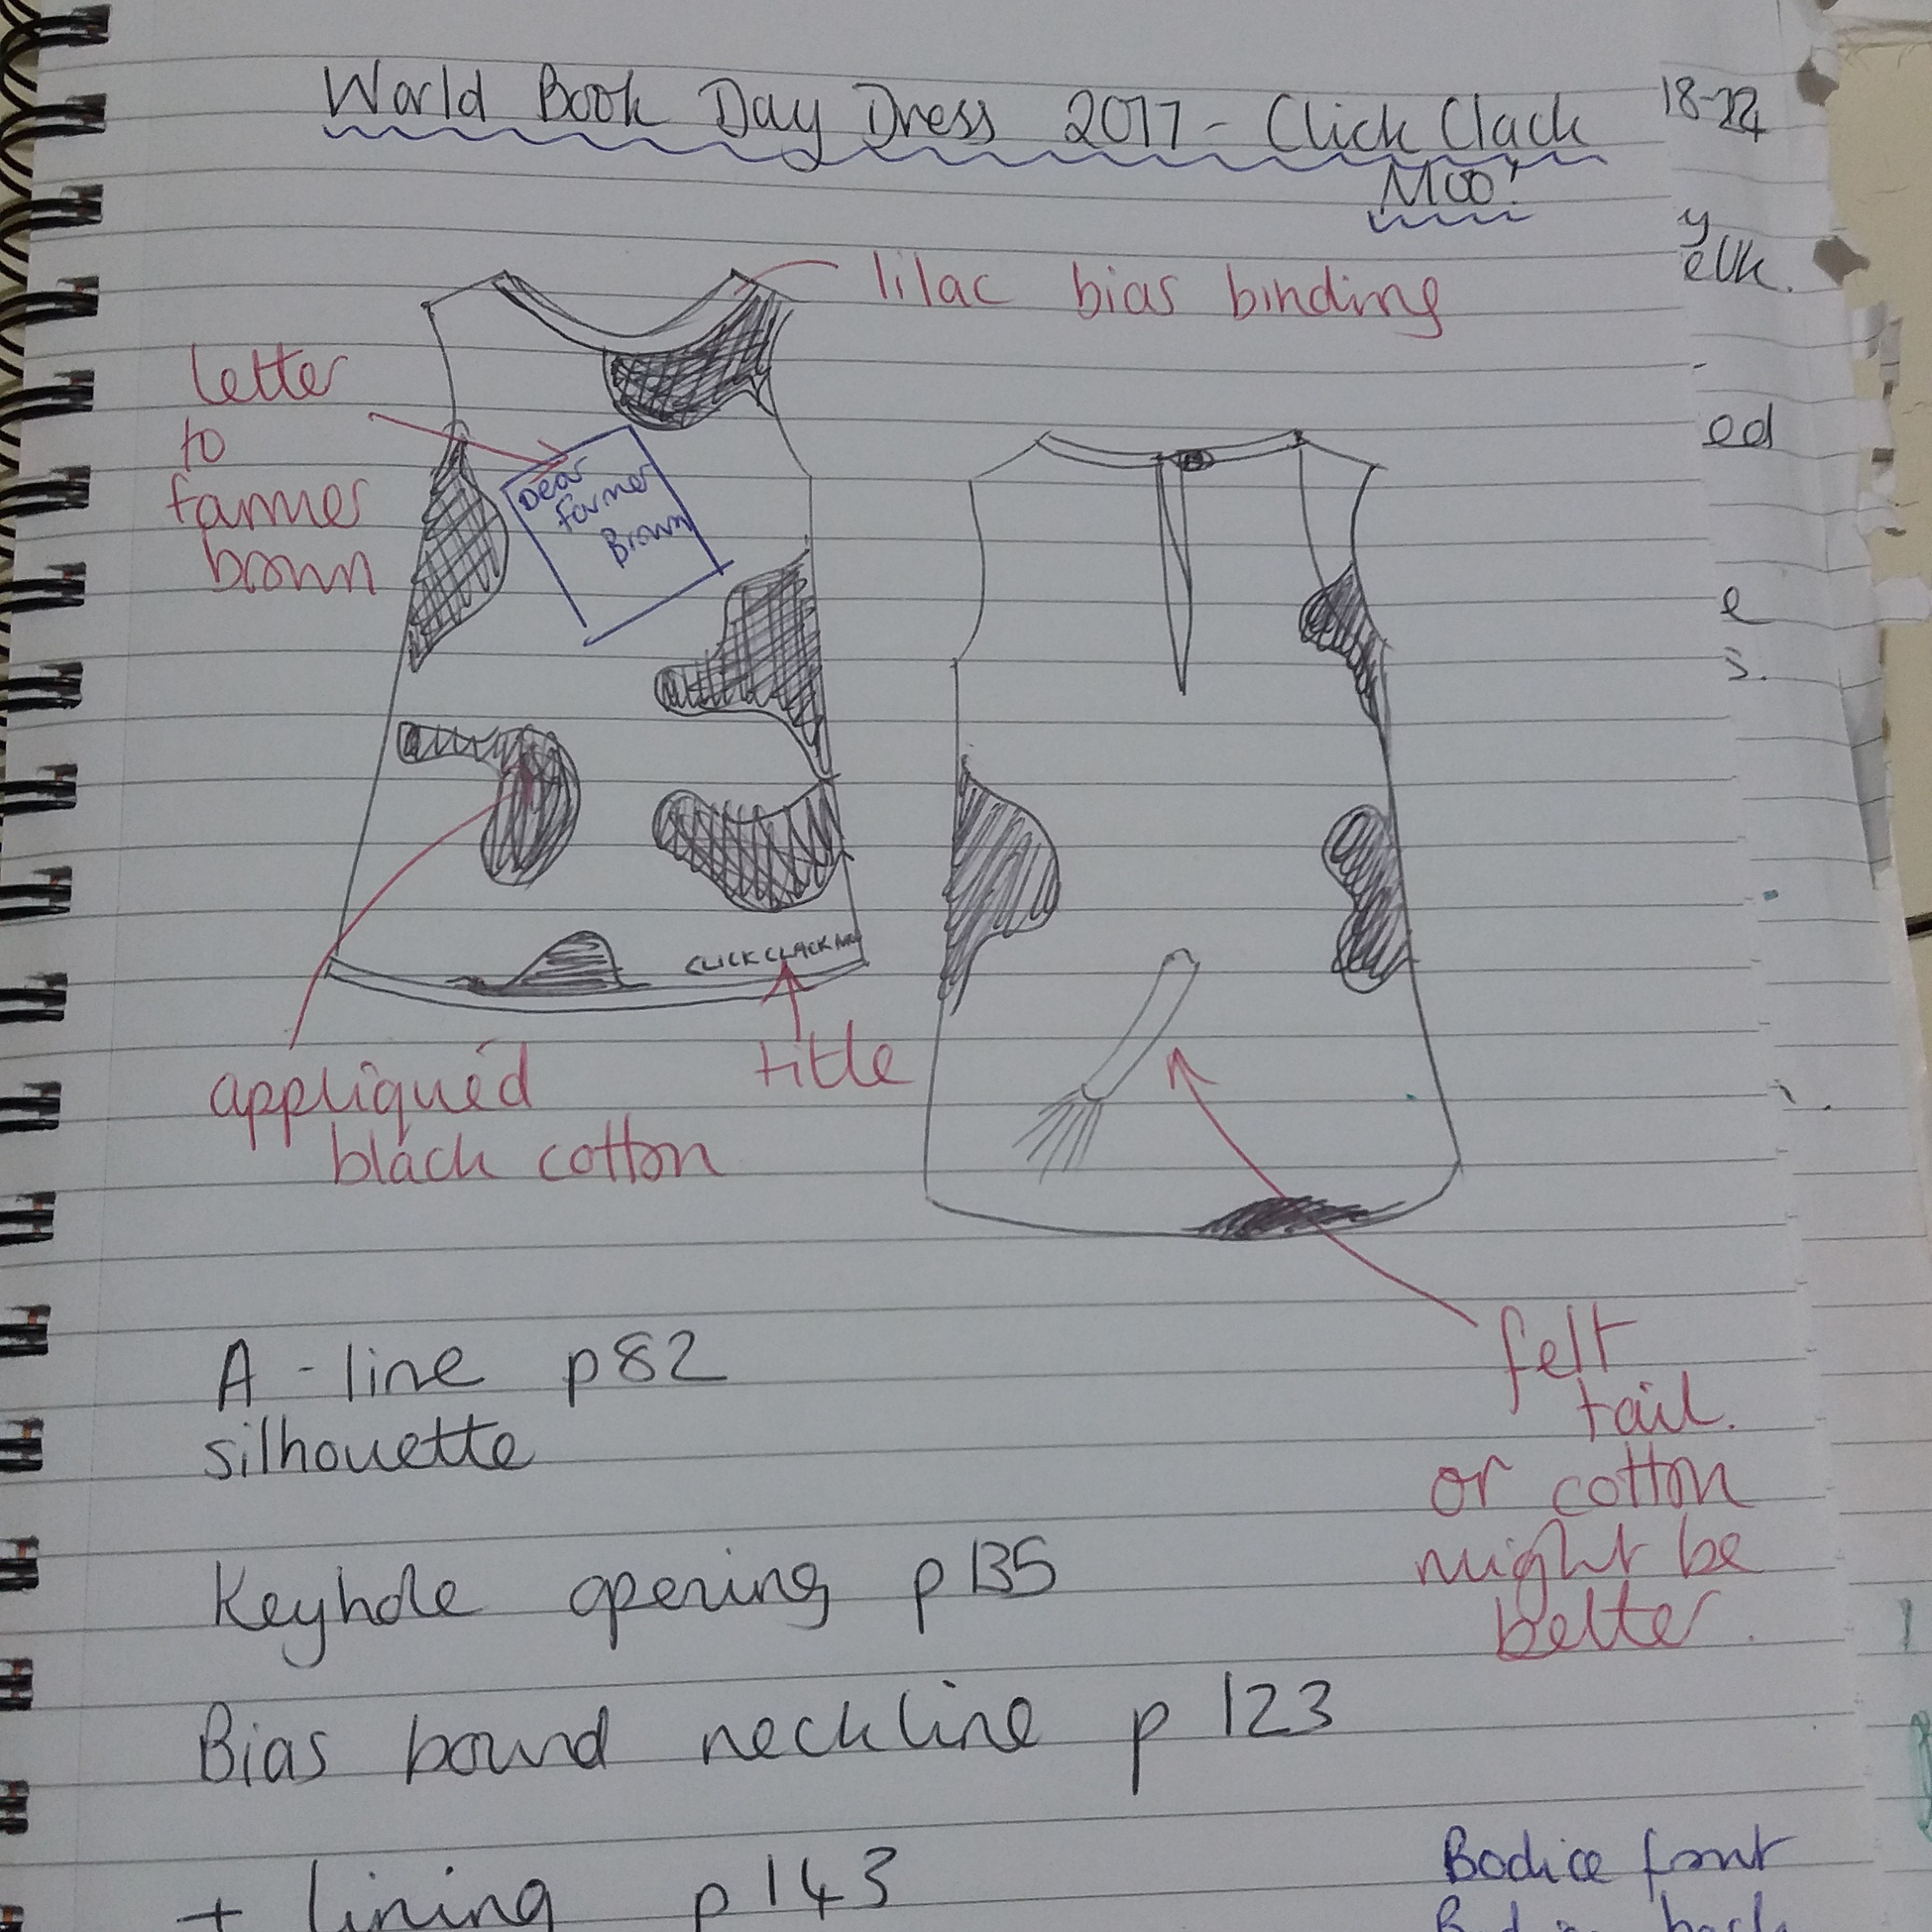 Cow Print A Line Dress My Moovalous World Book Day Make